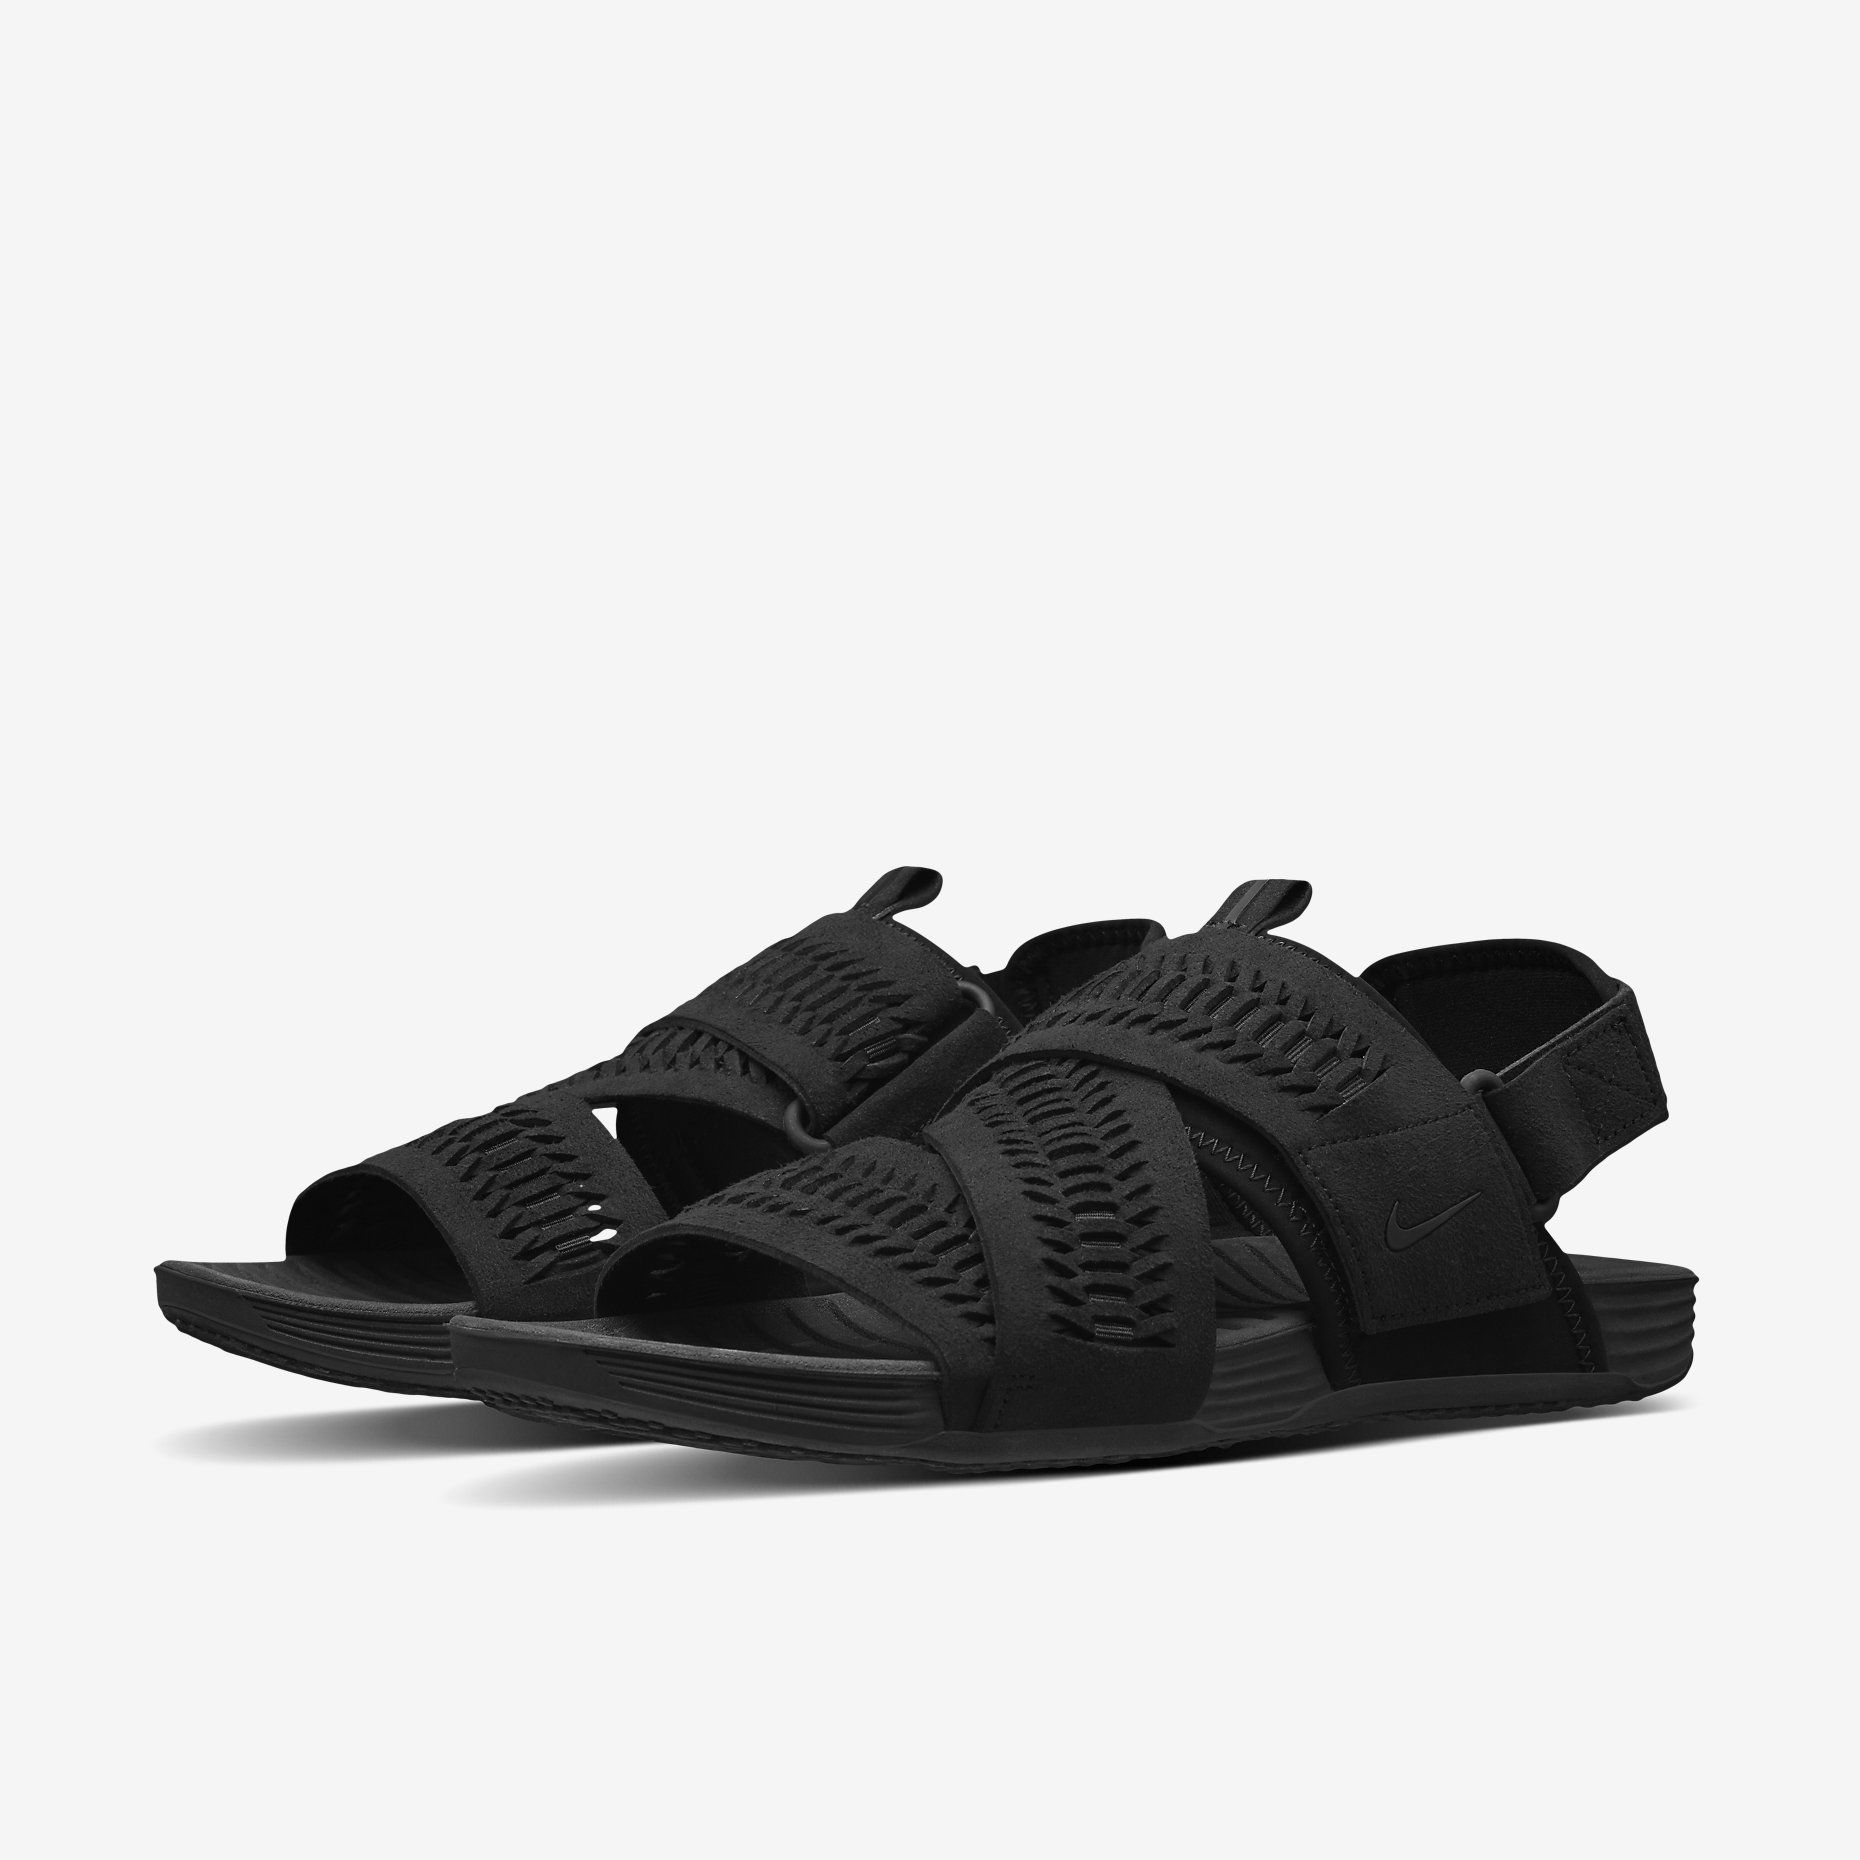 1d6bfd7c07ba NikeLab Air Solarsoft Zigzag Woven Men s Sandal. Nike Store